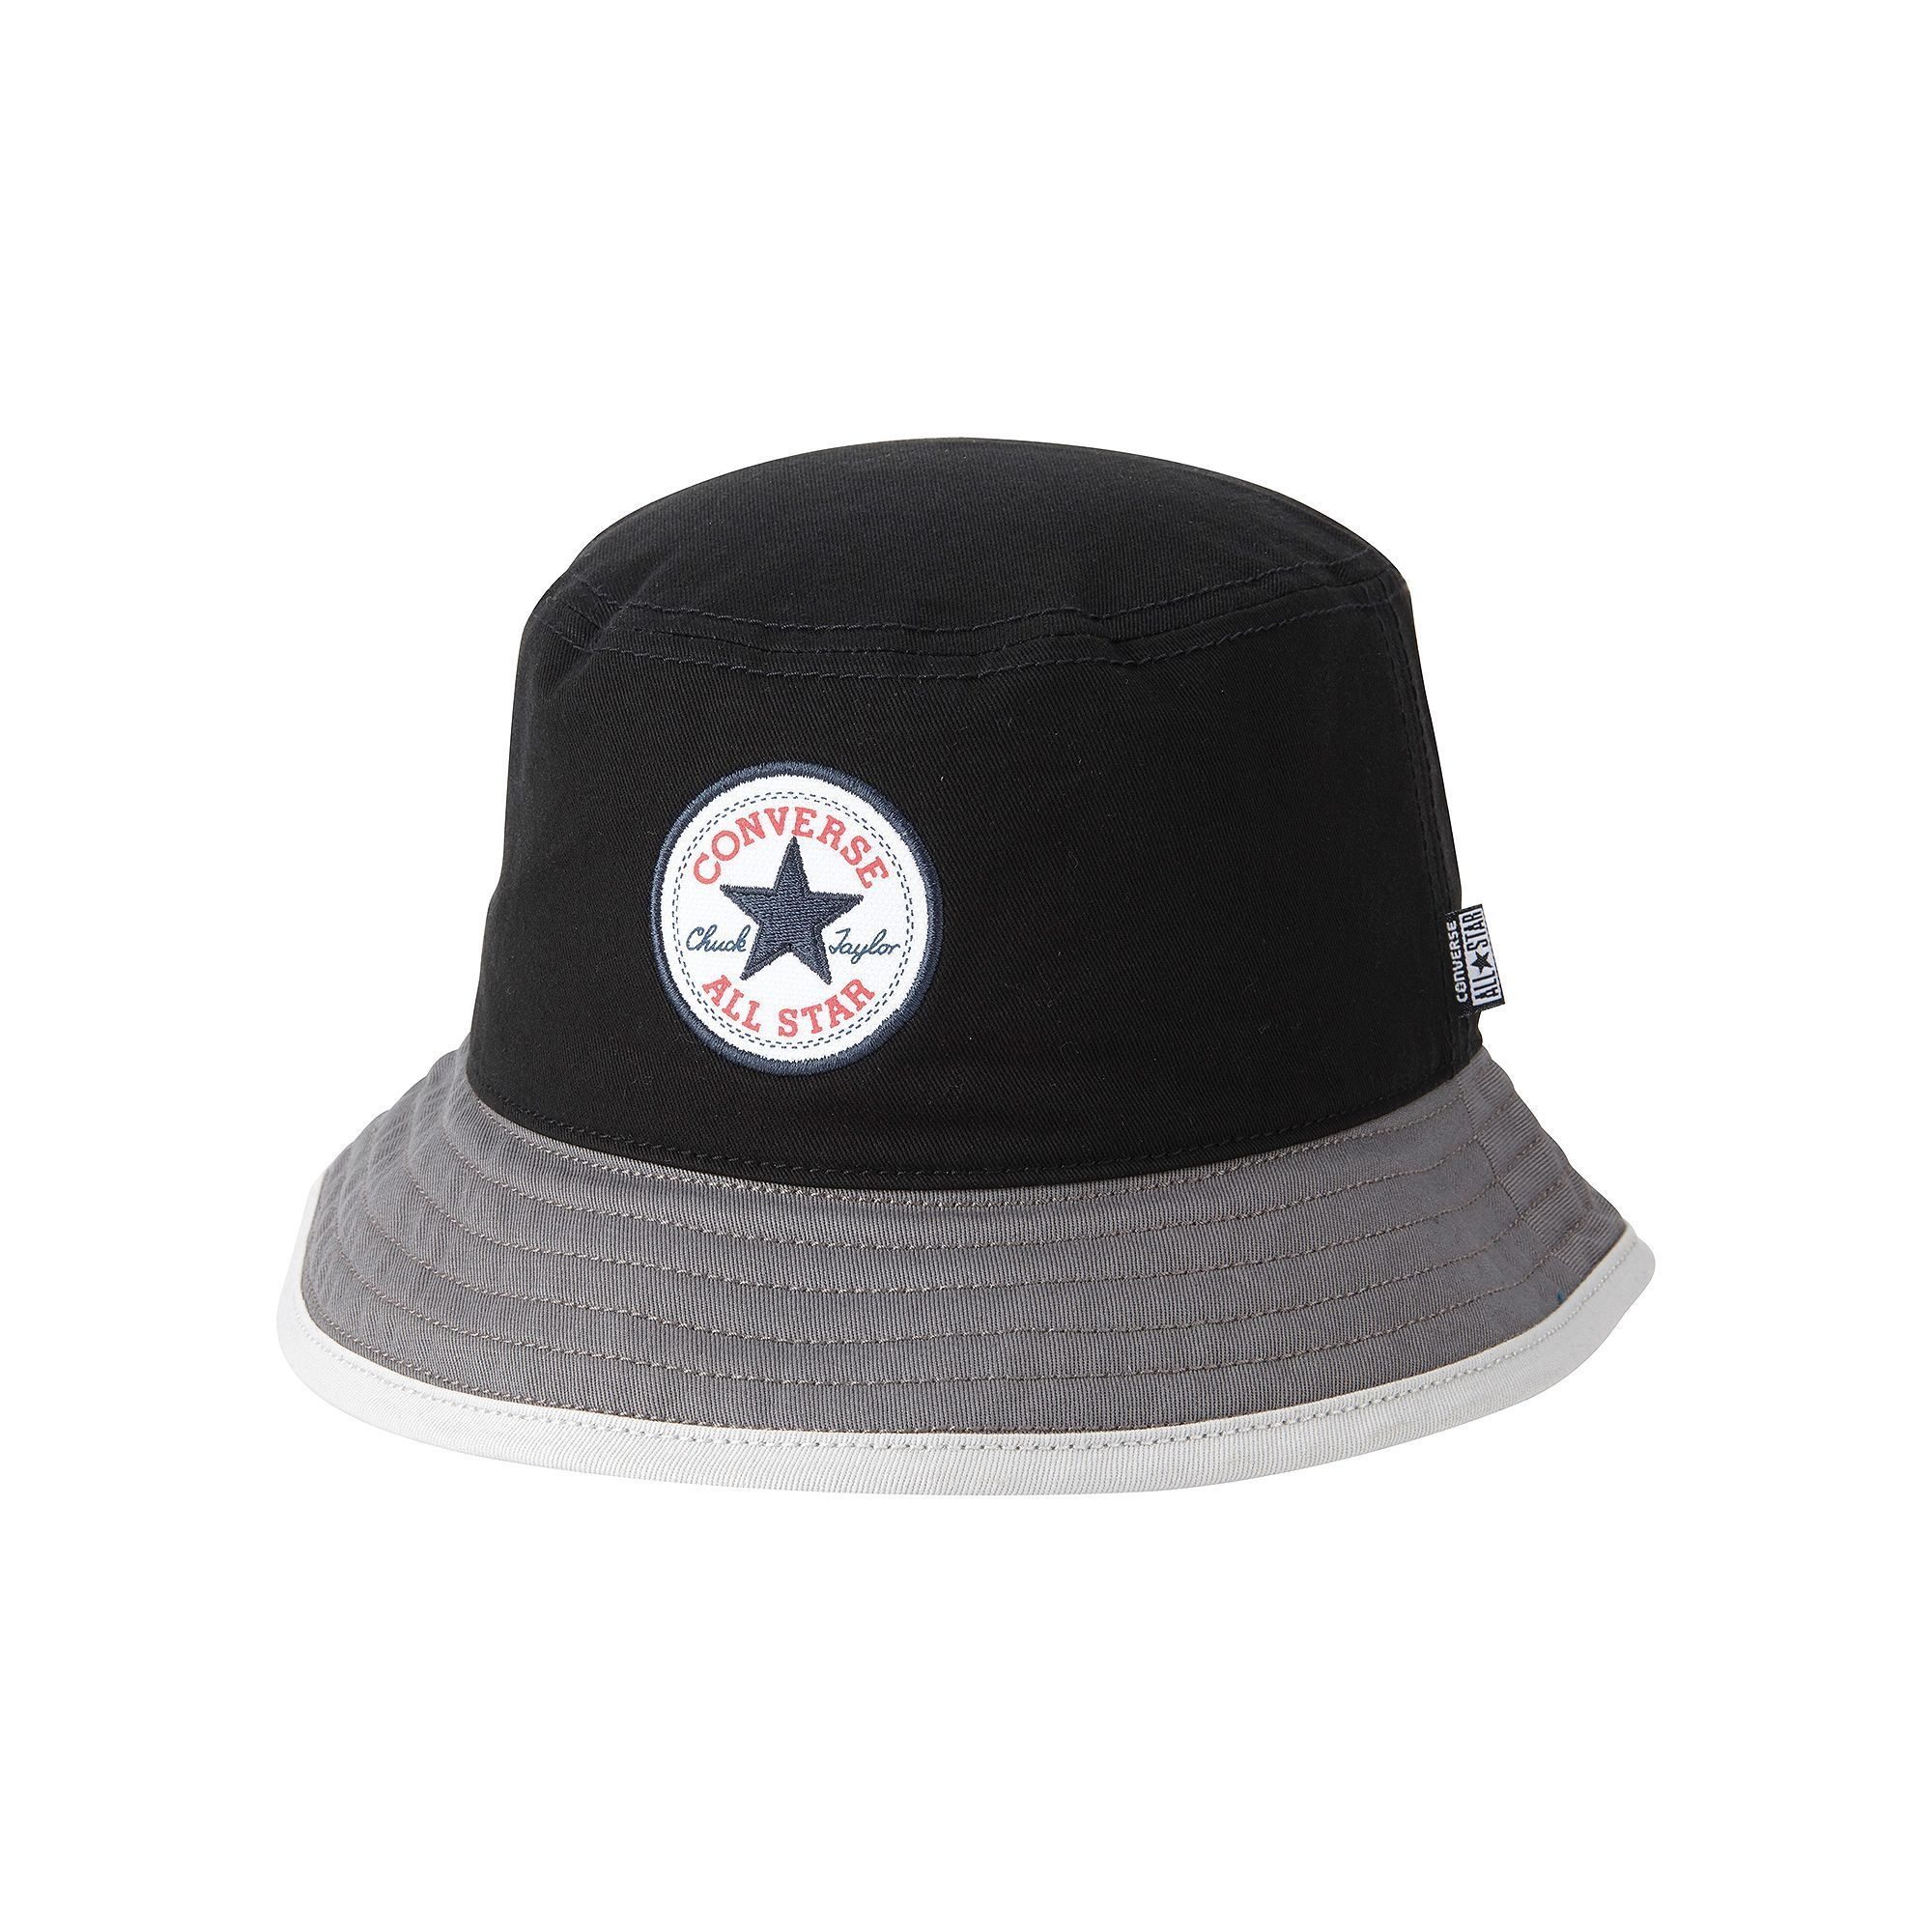 a0be9032b3980c Adult Converse All Star Chuck Taylor Colorblock Bucket Hat